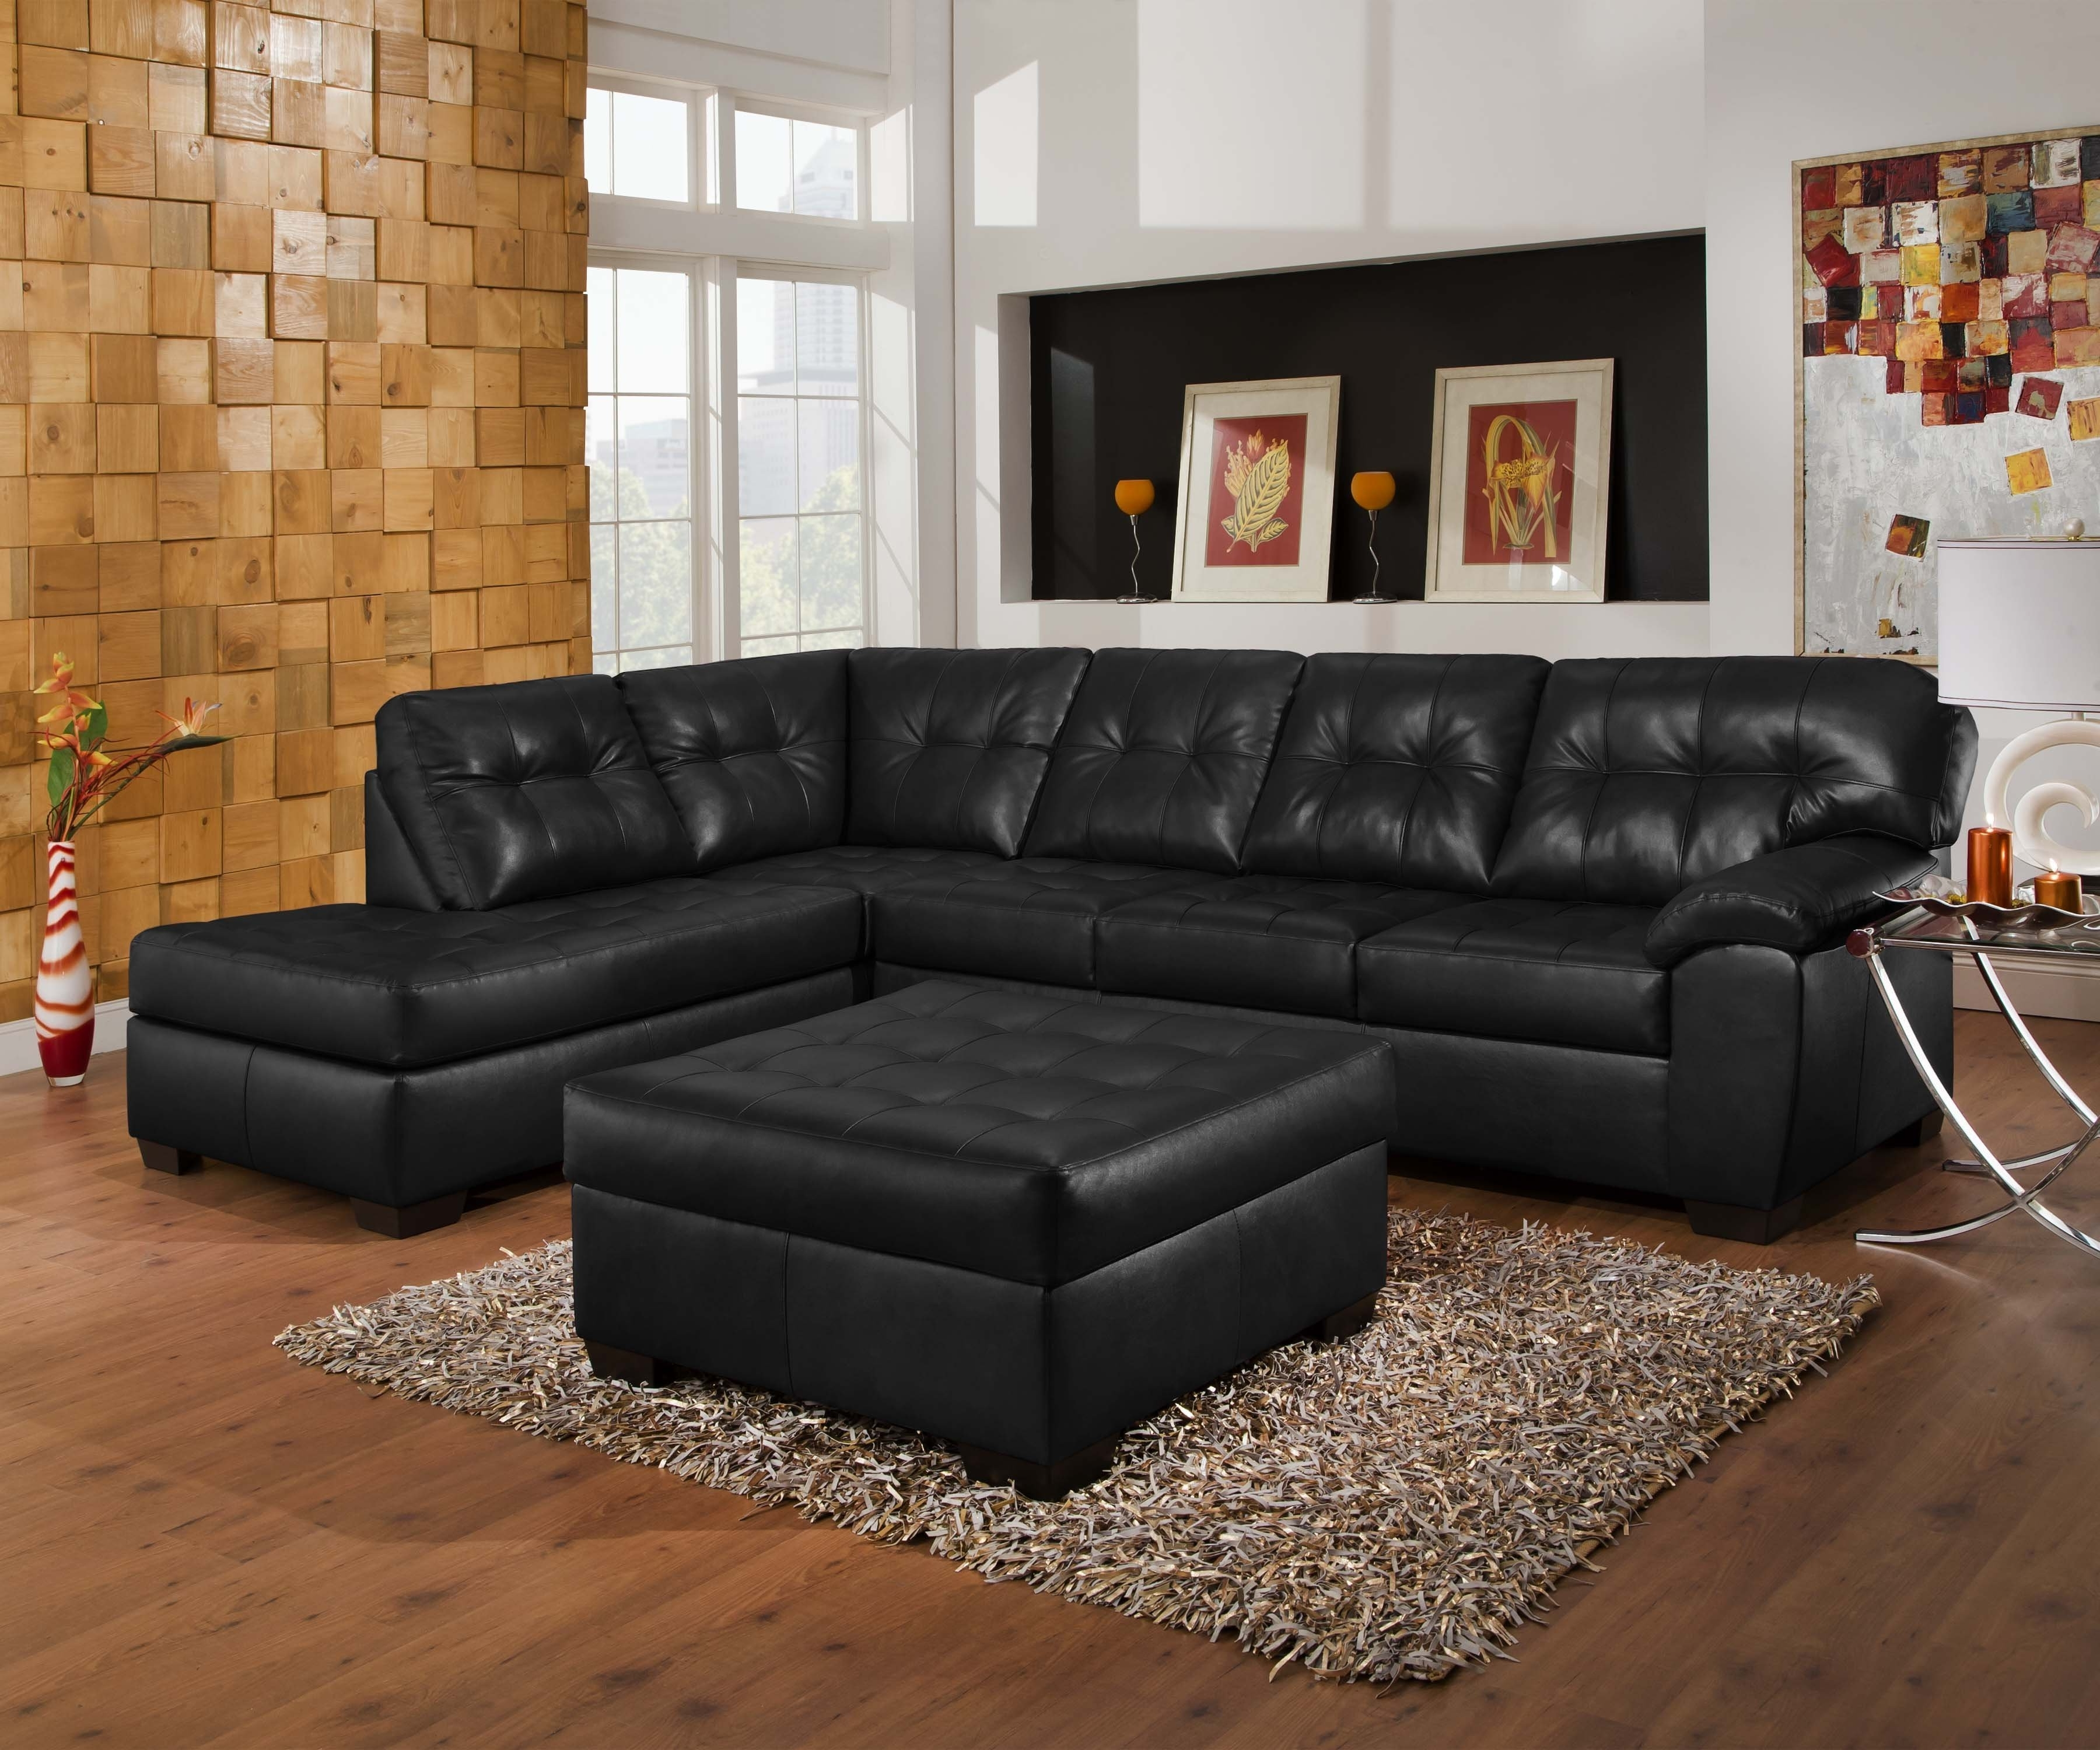 Well Known Sectional Sofa Clearance Brown Leather Fabrica Sofas Canada Within Canada Sale Sectional Sofas (View 20 of 20)